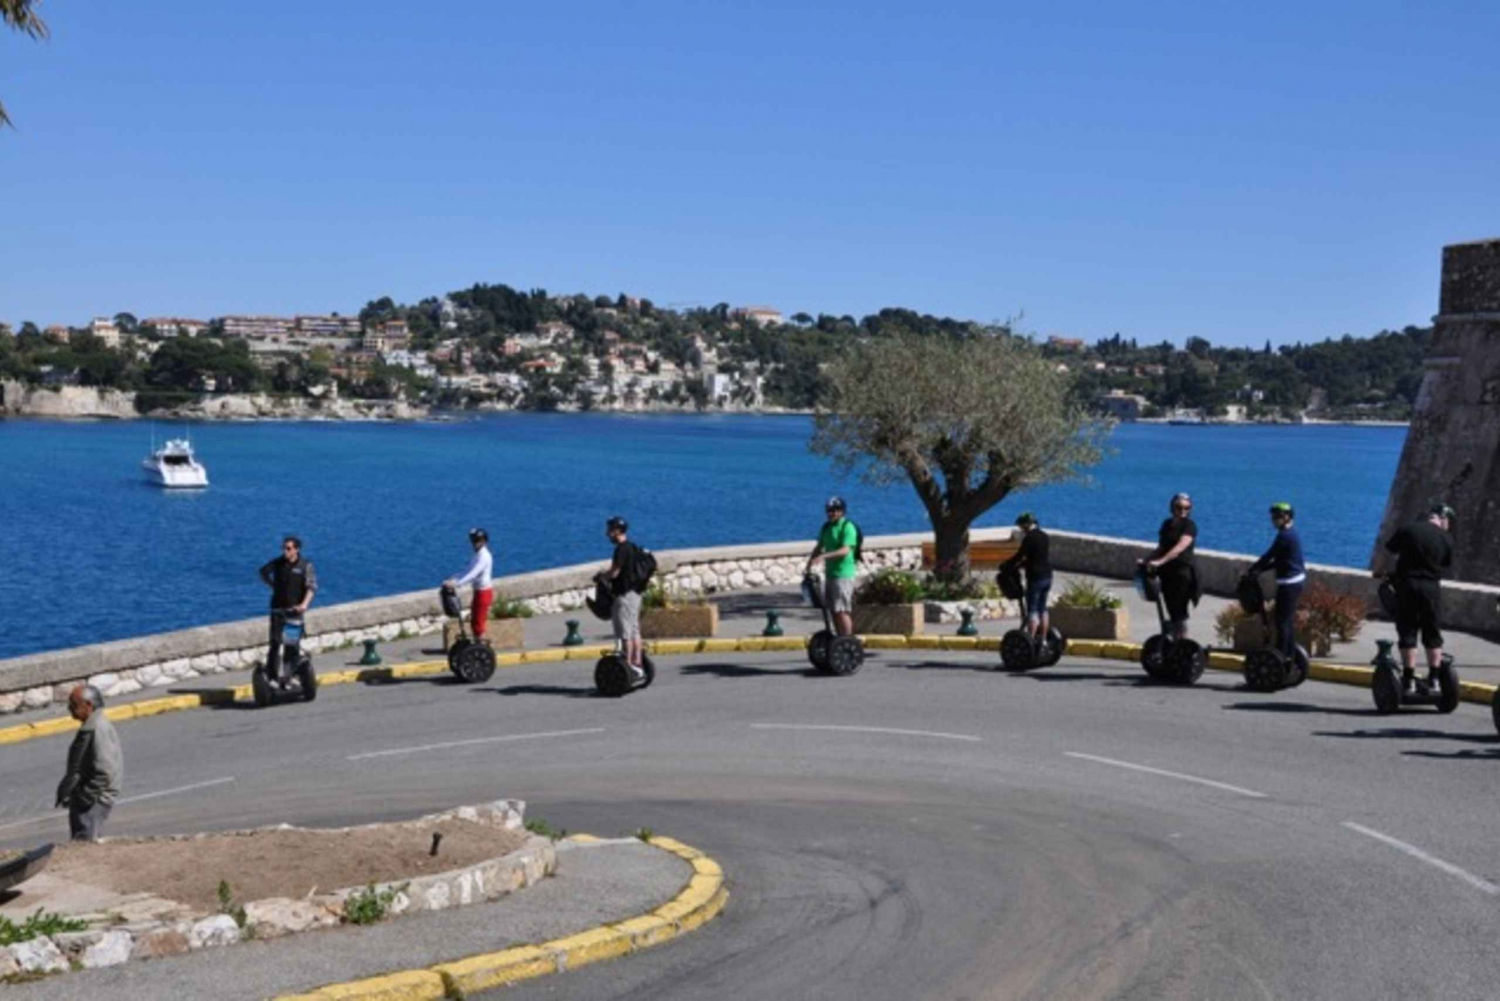 3-Hour Segway Tour to Nice & Villefranche-sur-Mer